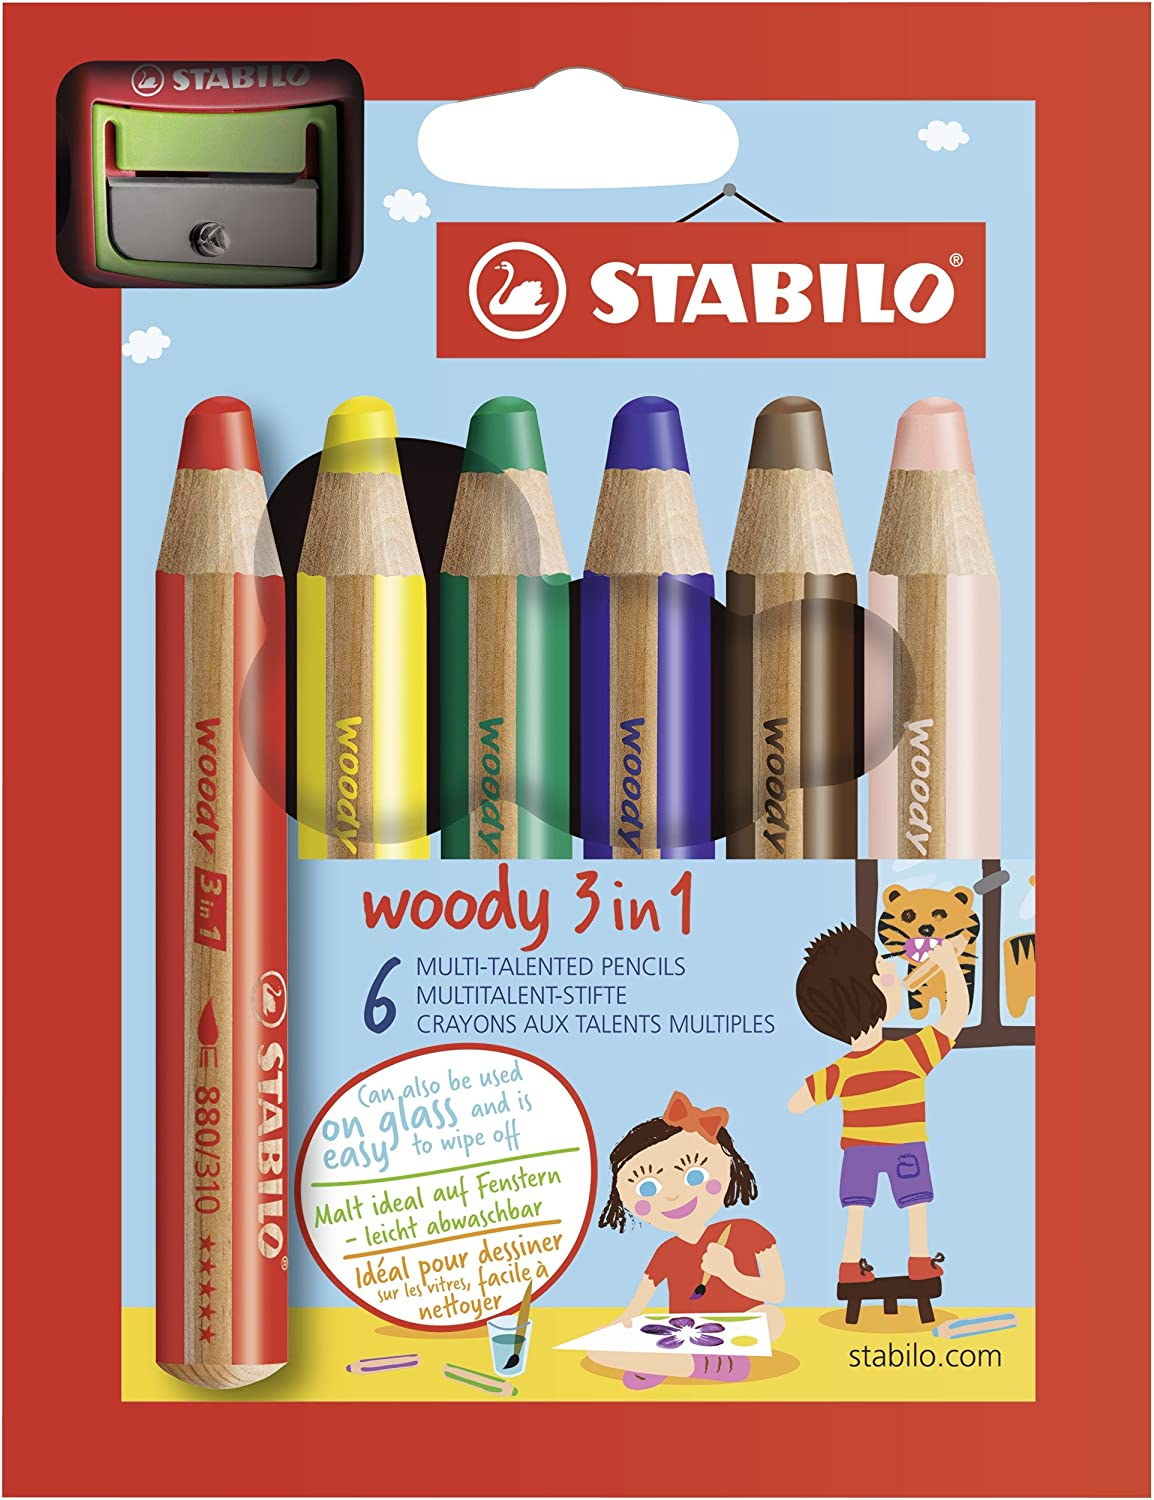 STABILO Woody 3 in 1 matitoni colorati + Temperino - Astuccio da 10 SW880-10-2